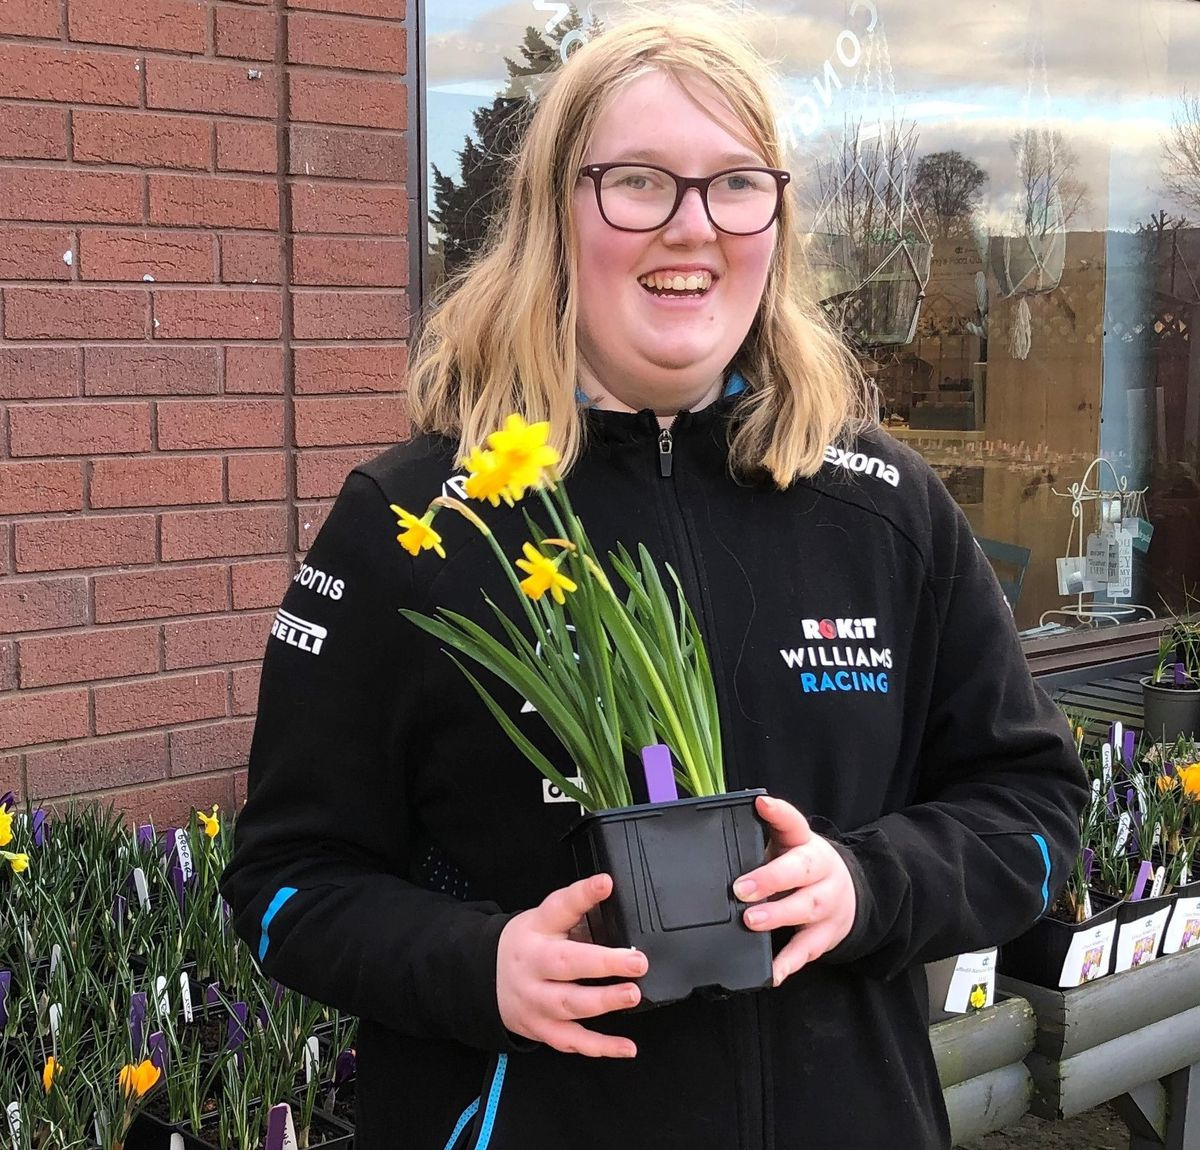 Horticultural student at Derwen college, Sophie preparing for the re-opening of the garden centre